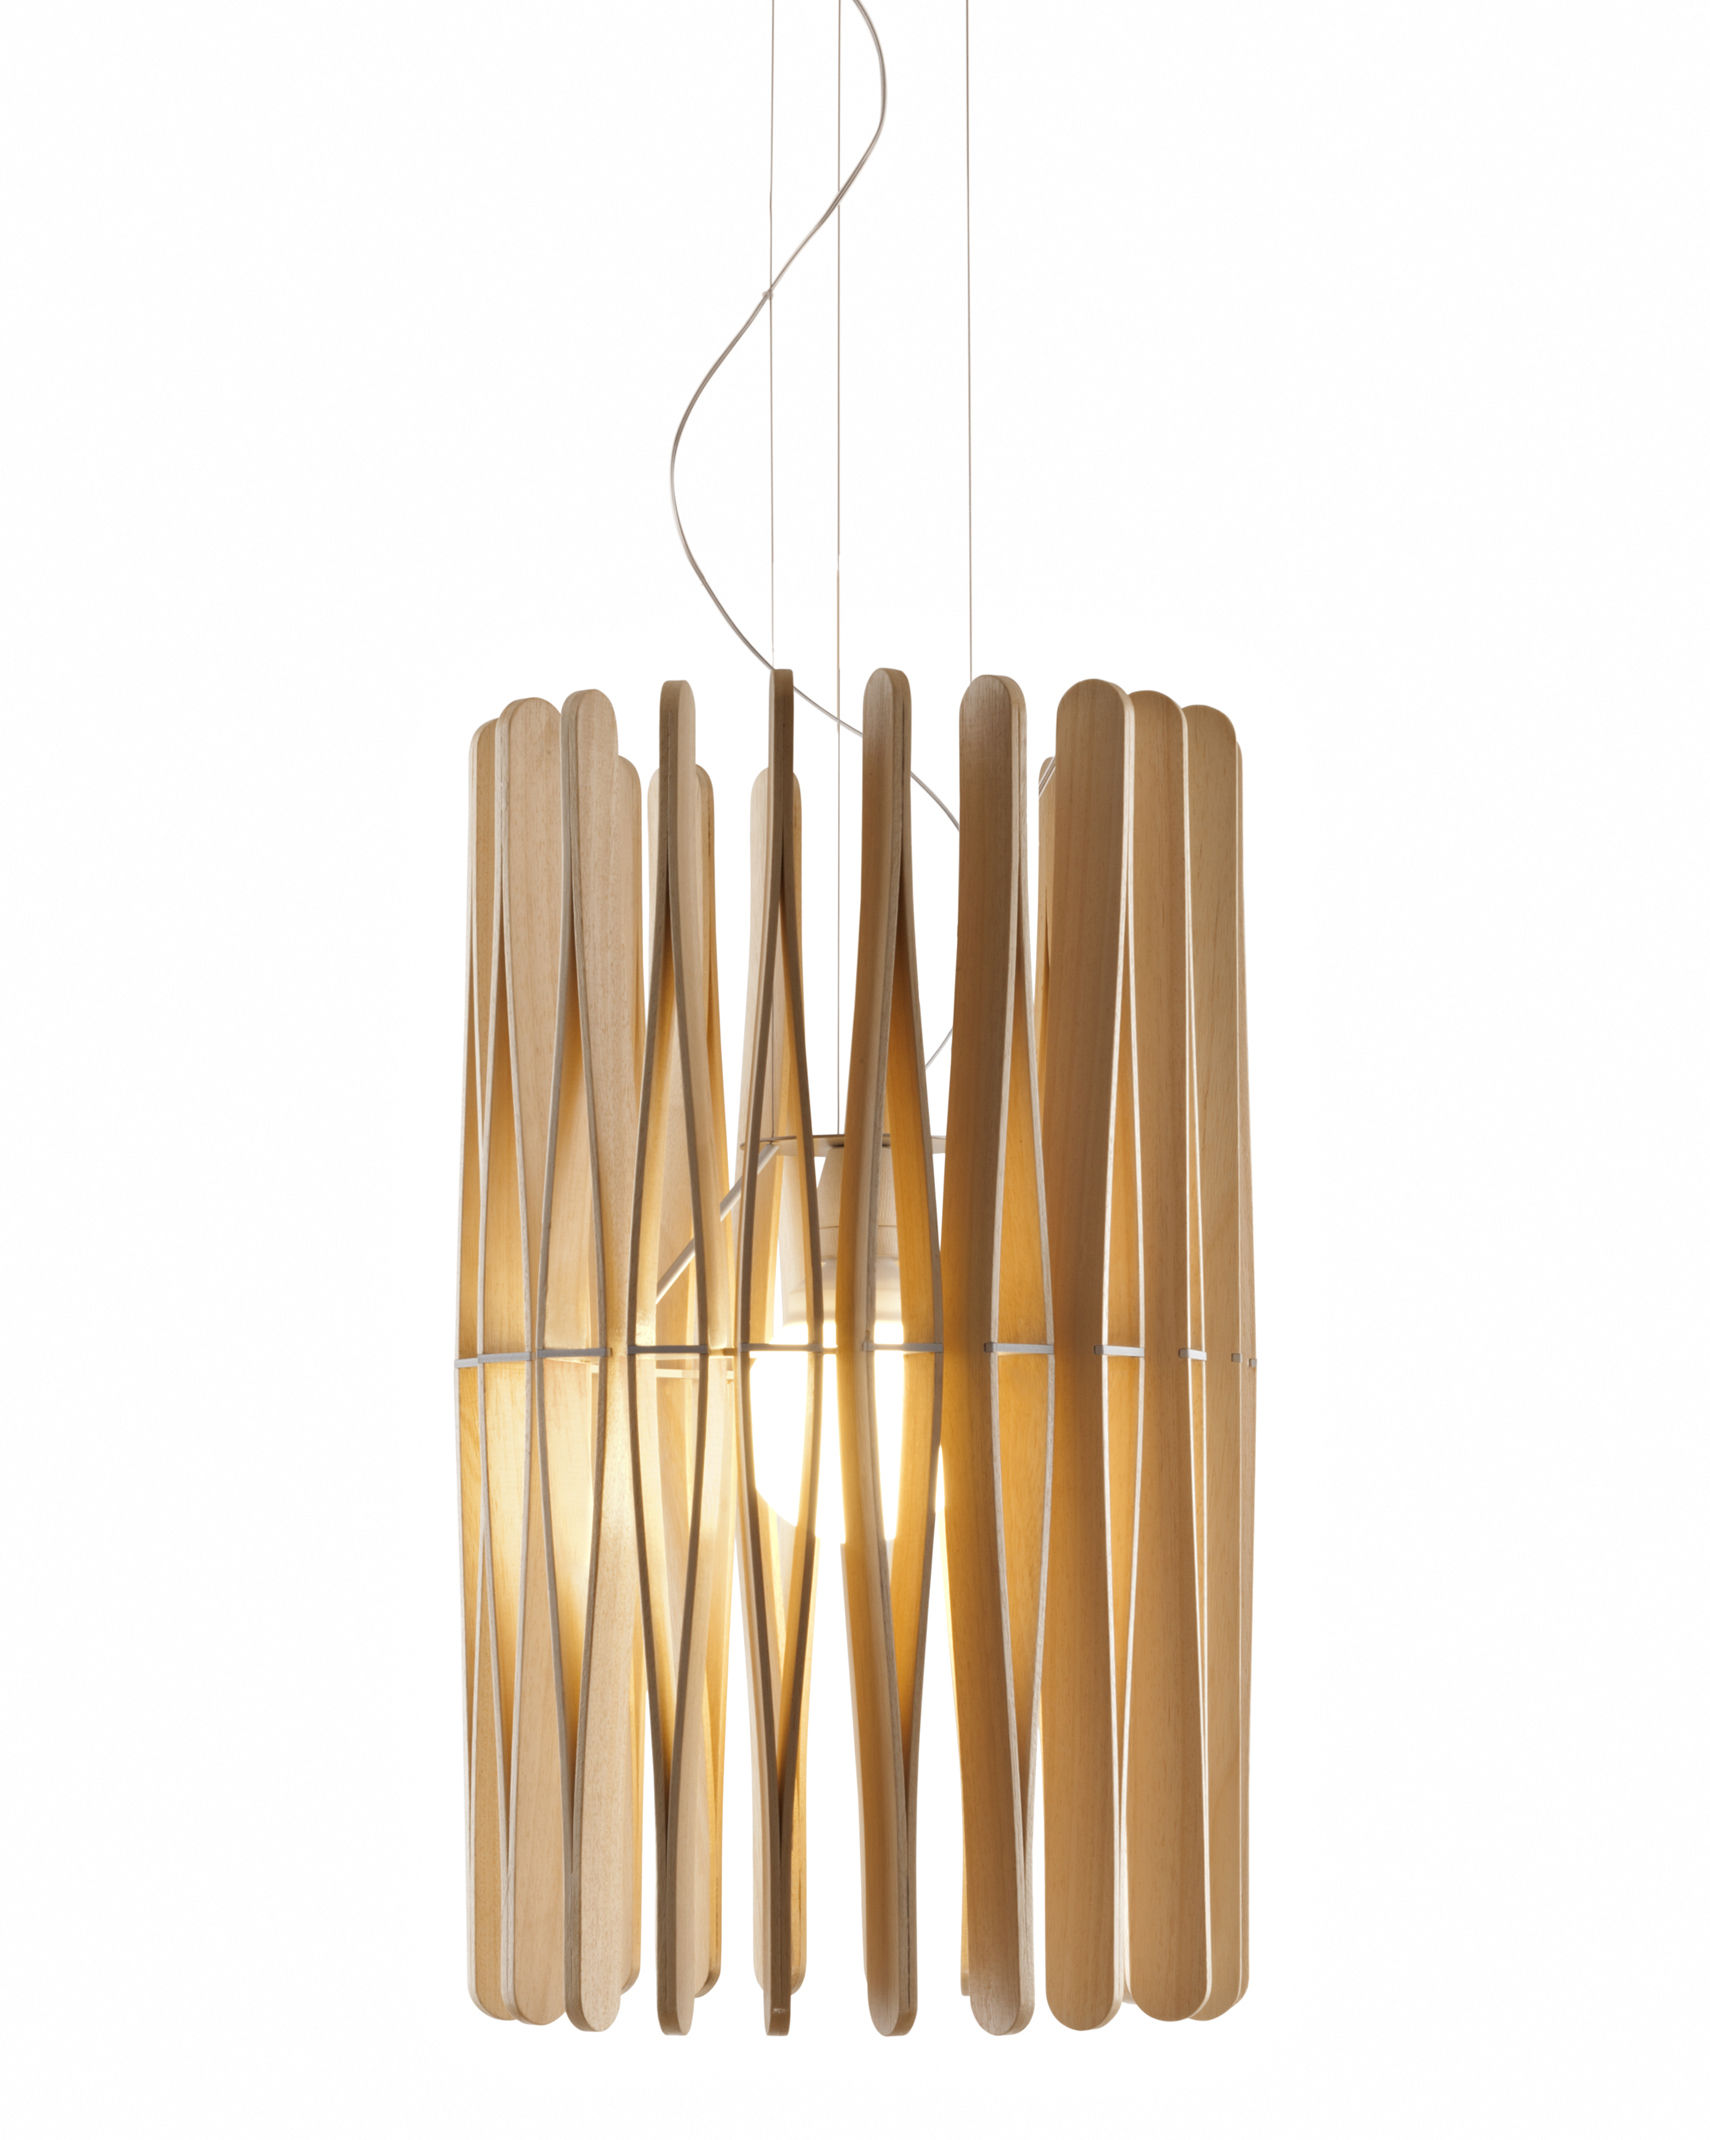 Lighting - Pendant Lighting - Stick 02 Pendant by Fabbian - Natural wood - Ayous wood, Varnished metal